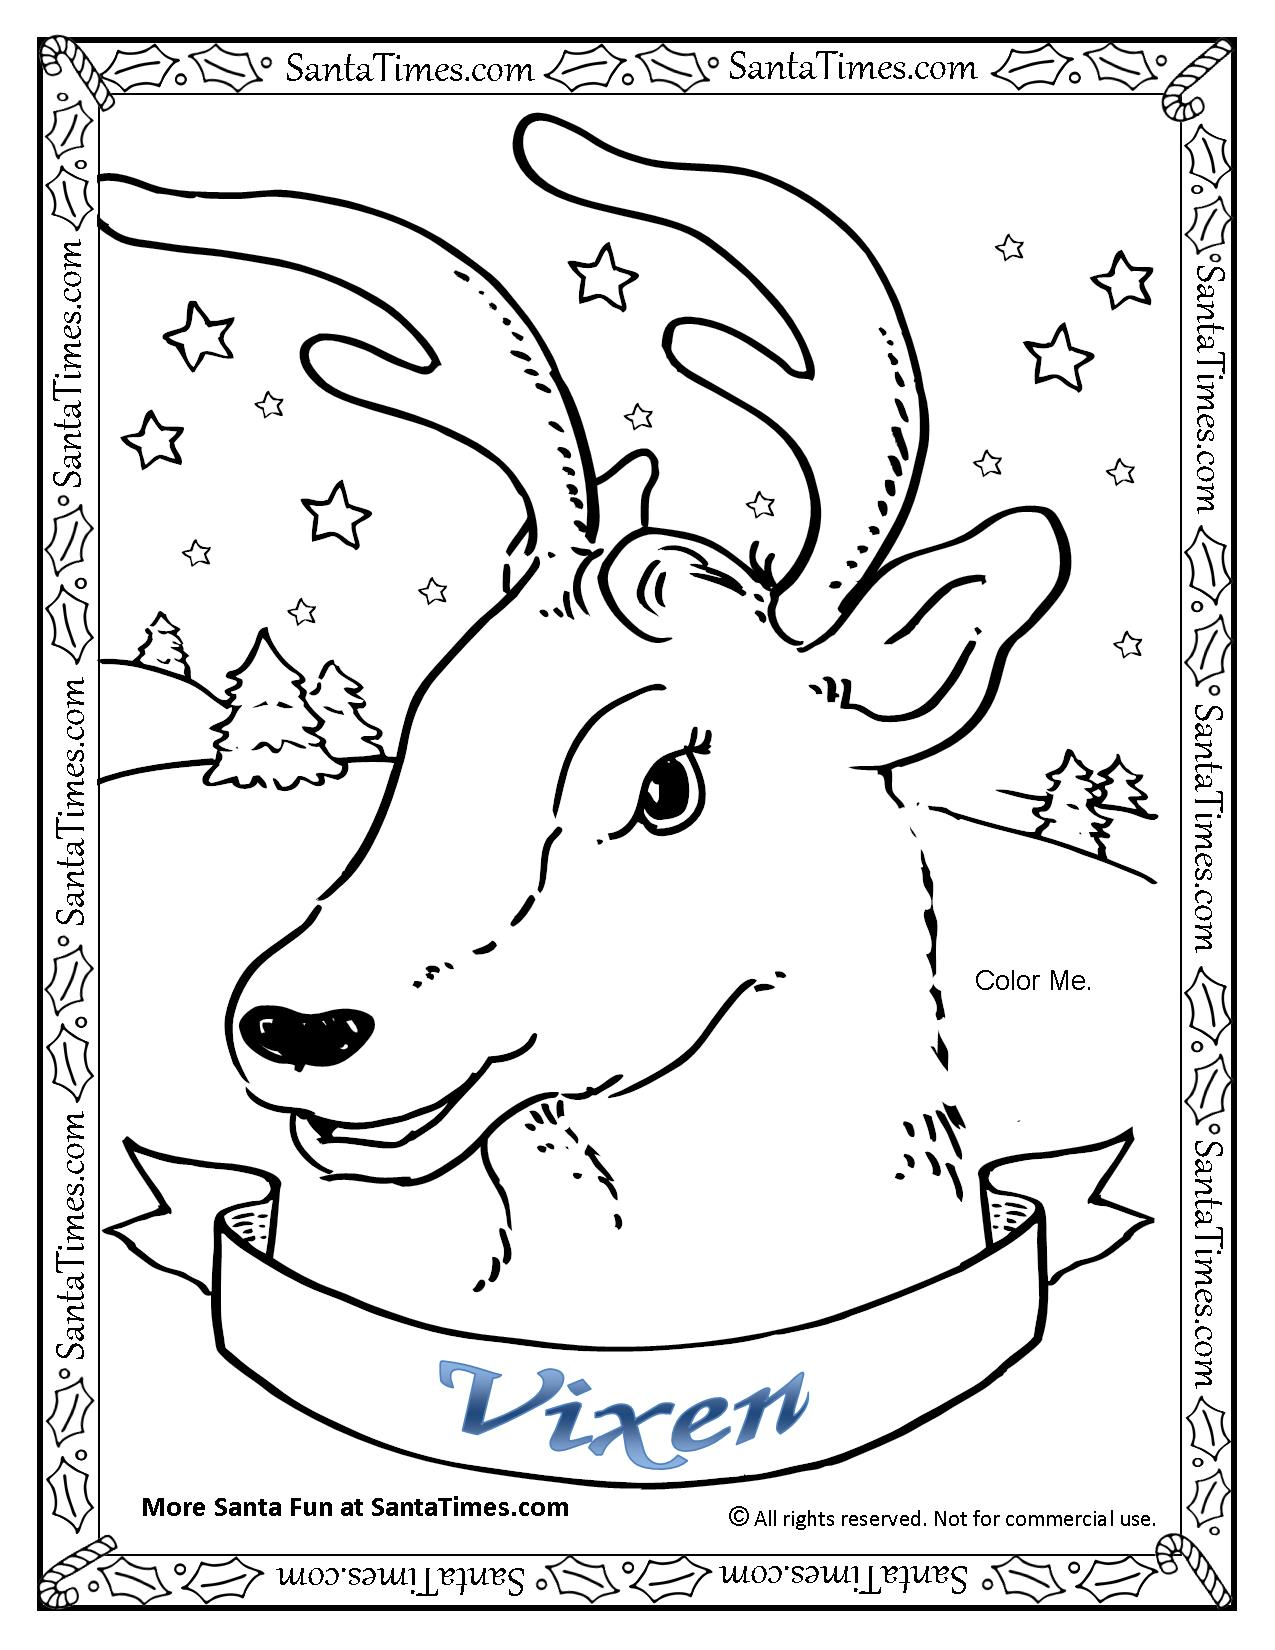 vixen the reindeer printable coloring page